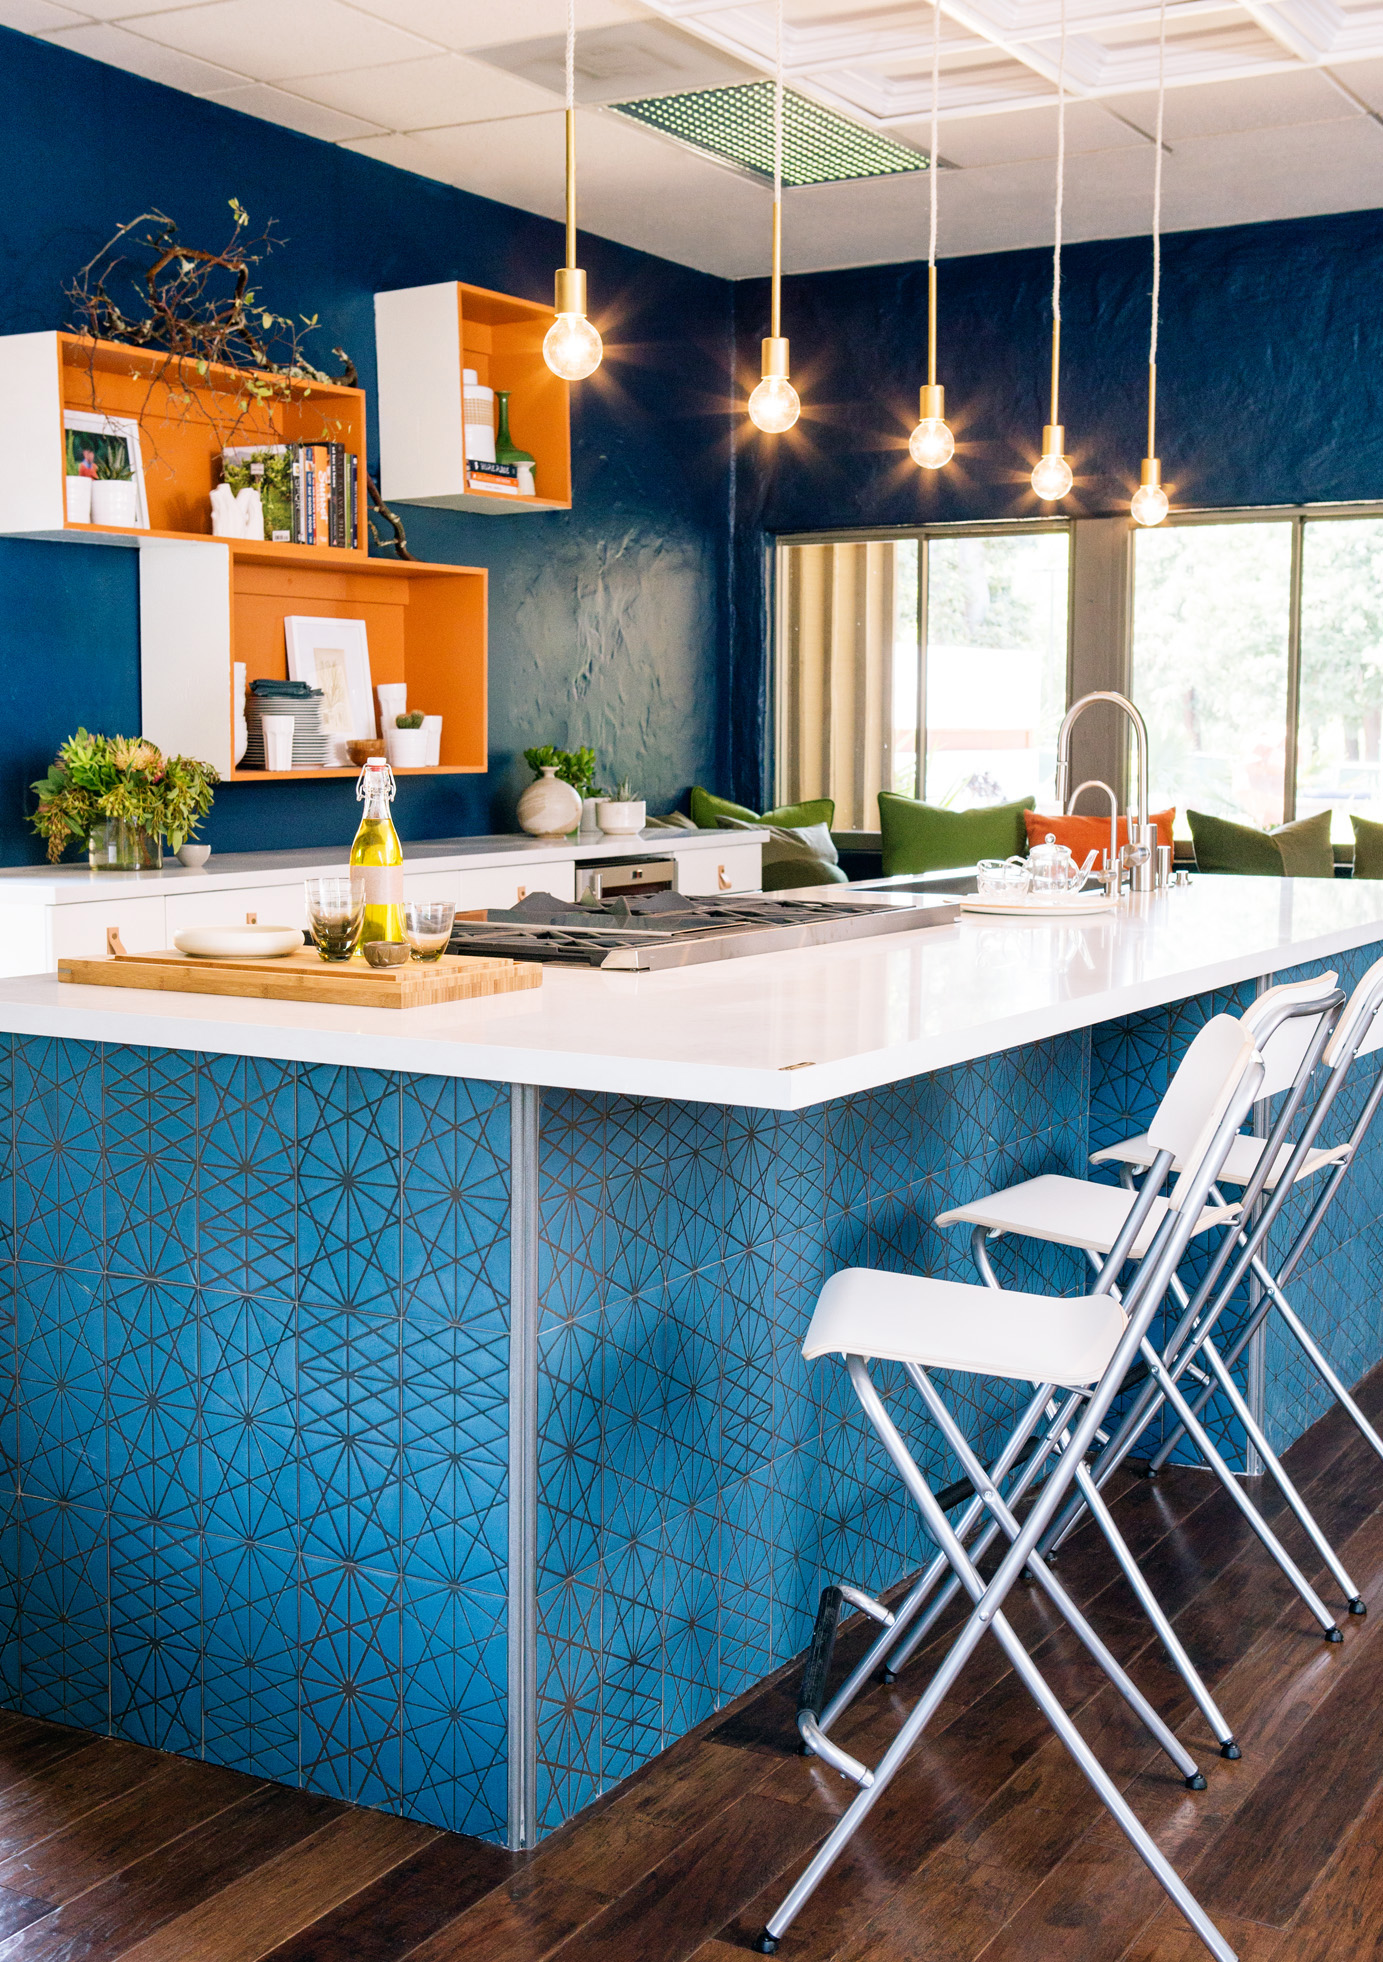 10 Hardest-Working Kitchen Islands - Sunset Magazine